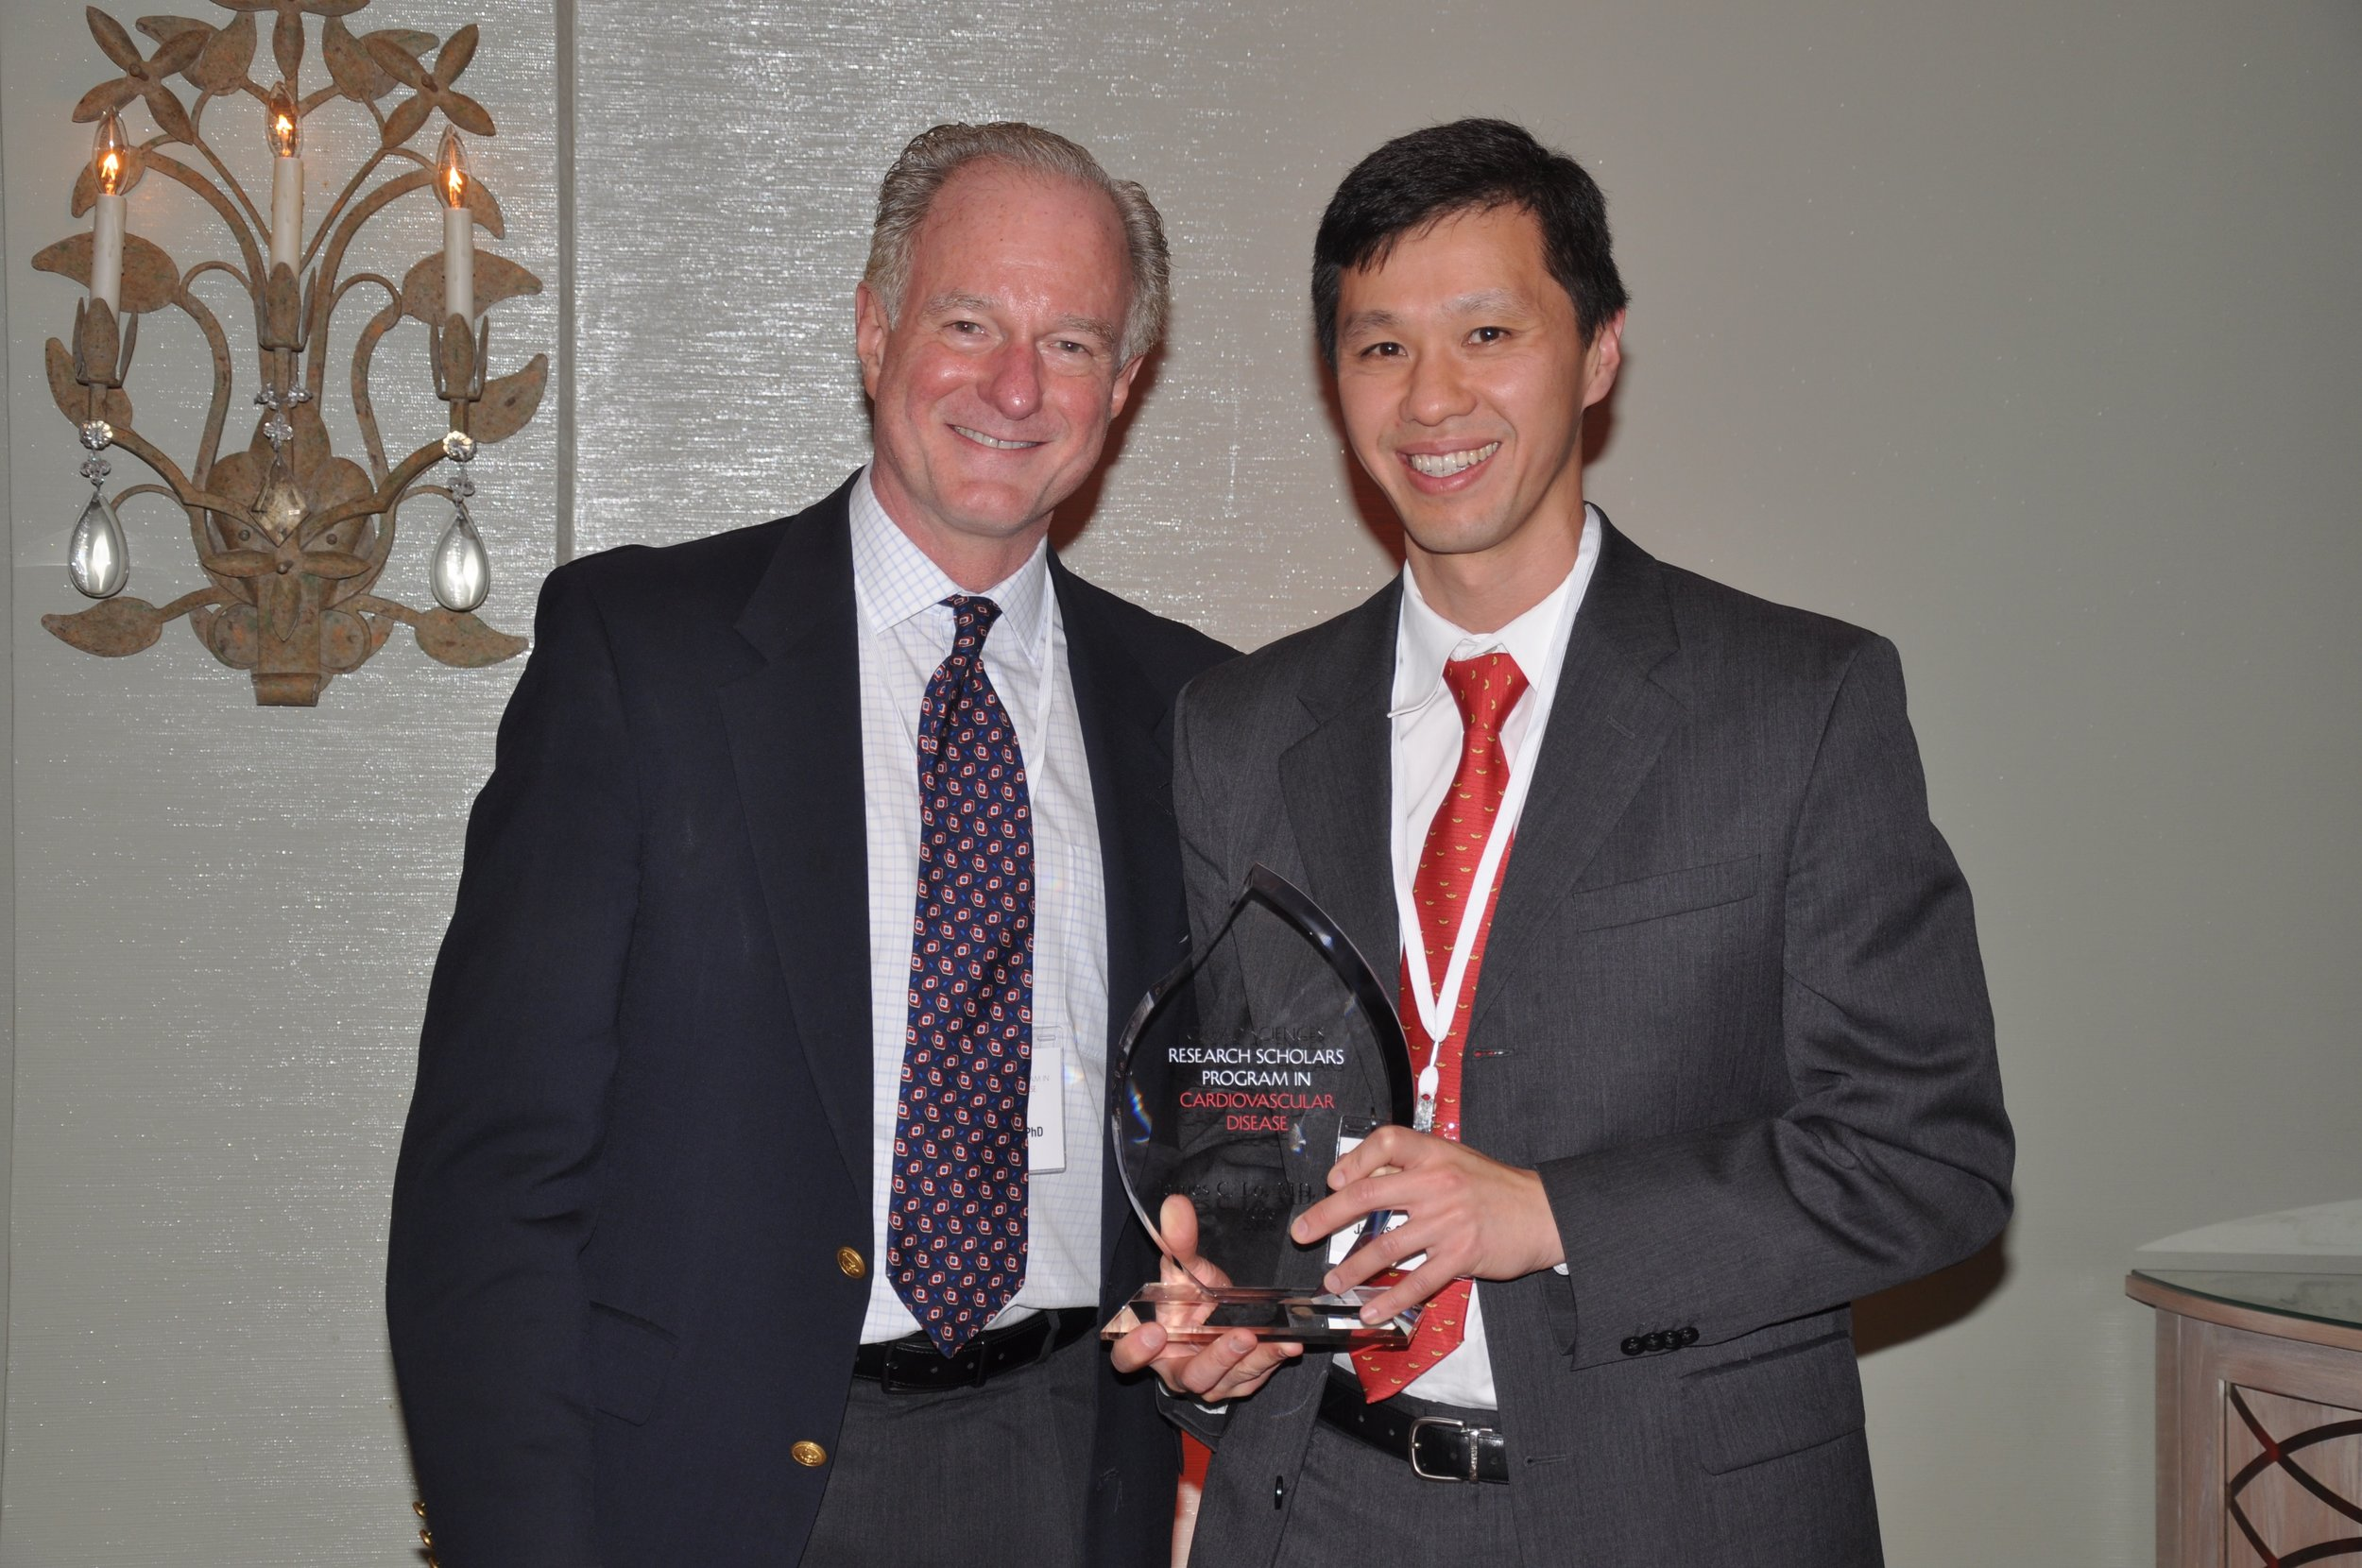 November 2016 - James was named a Gilead Sciences Research Scholar in Cardiovascular Diseases